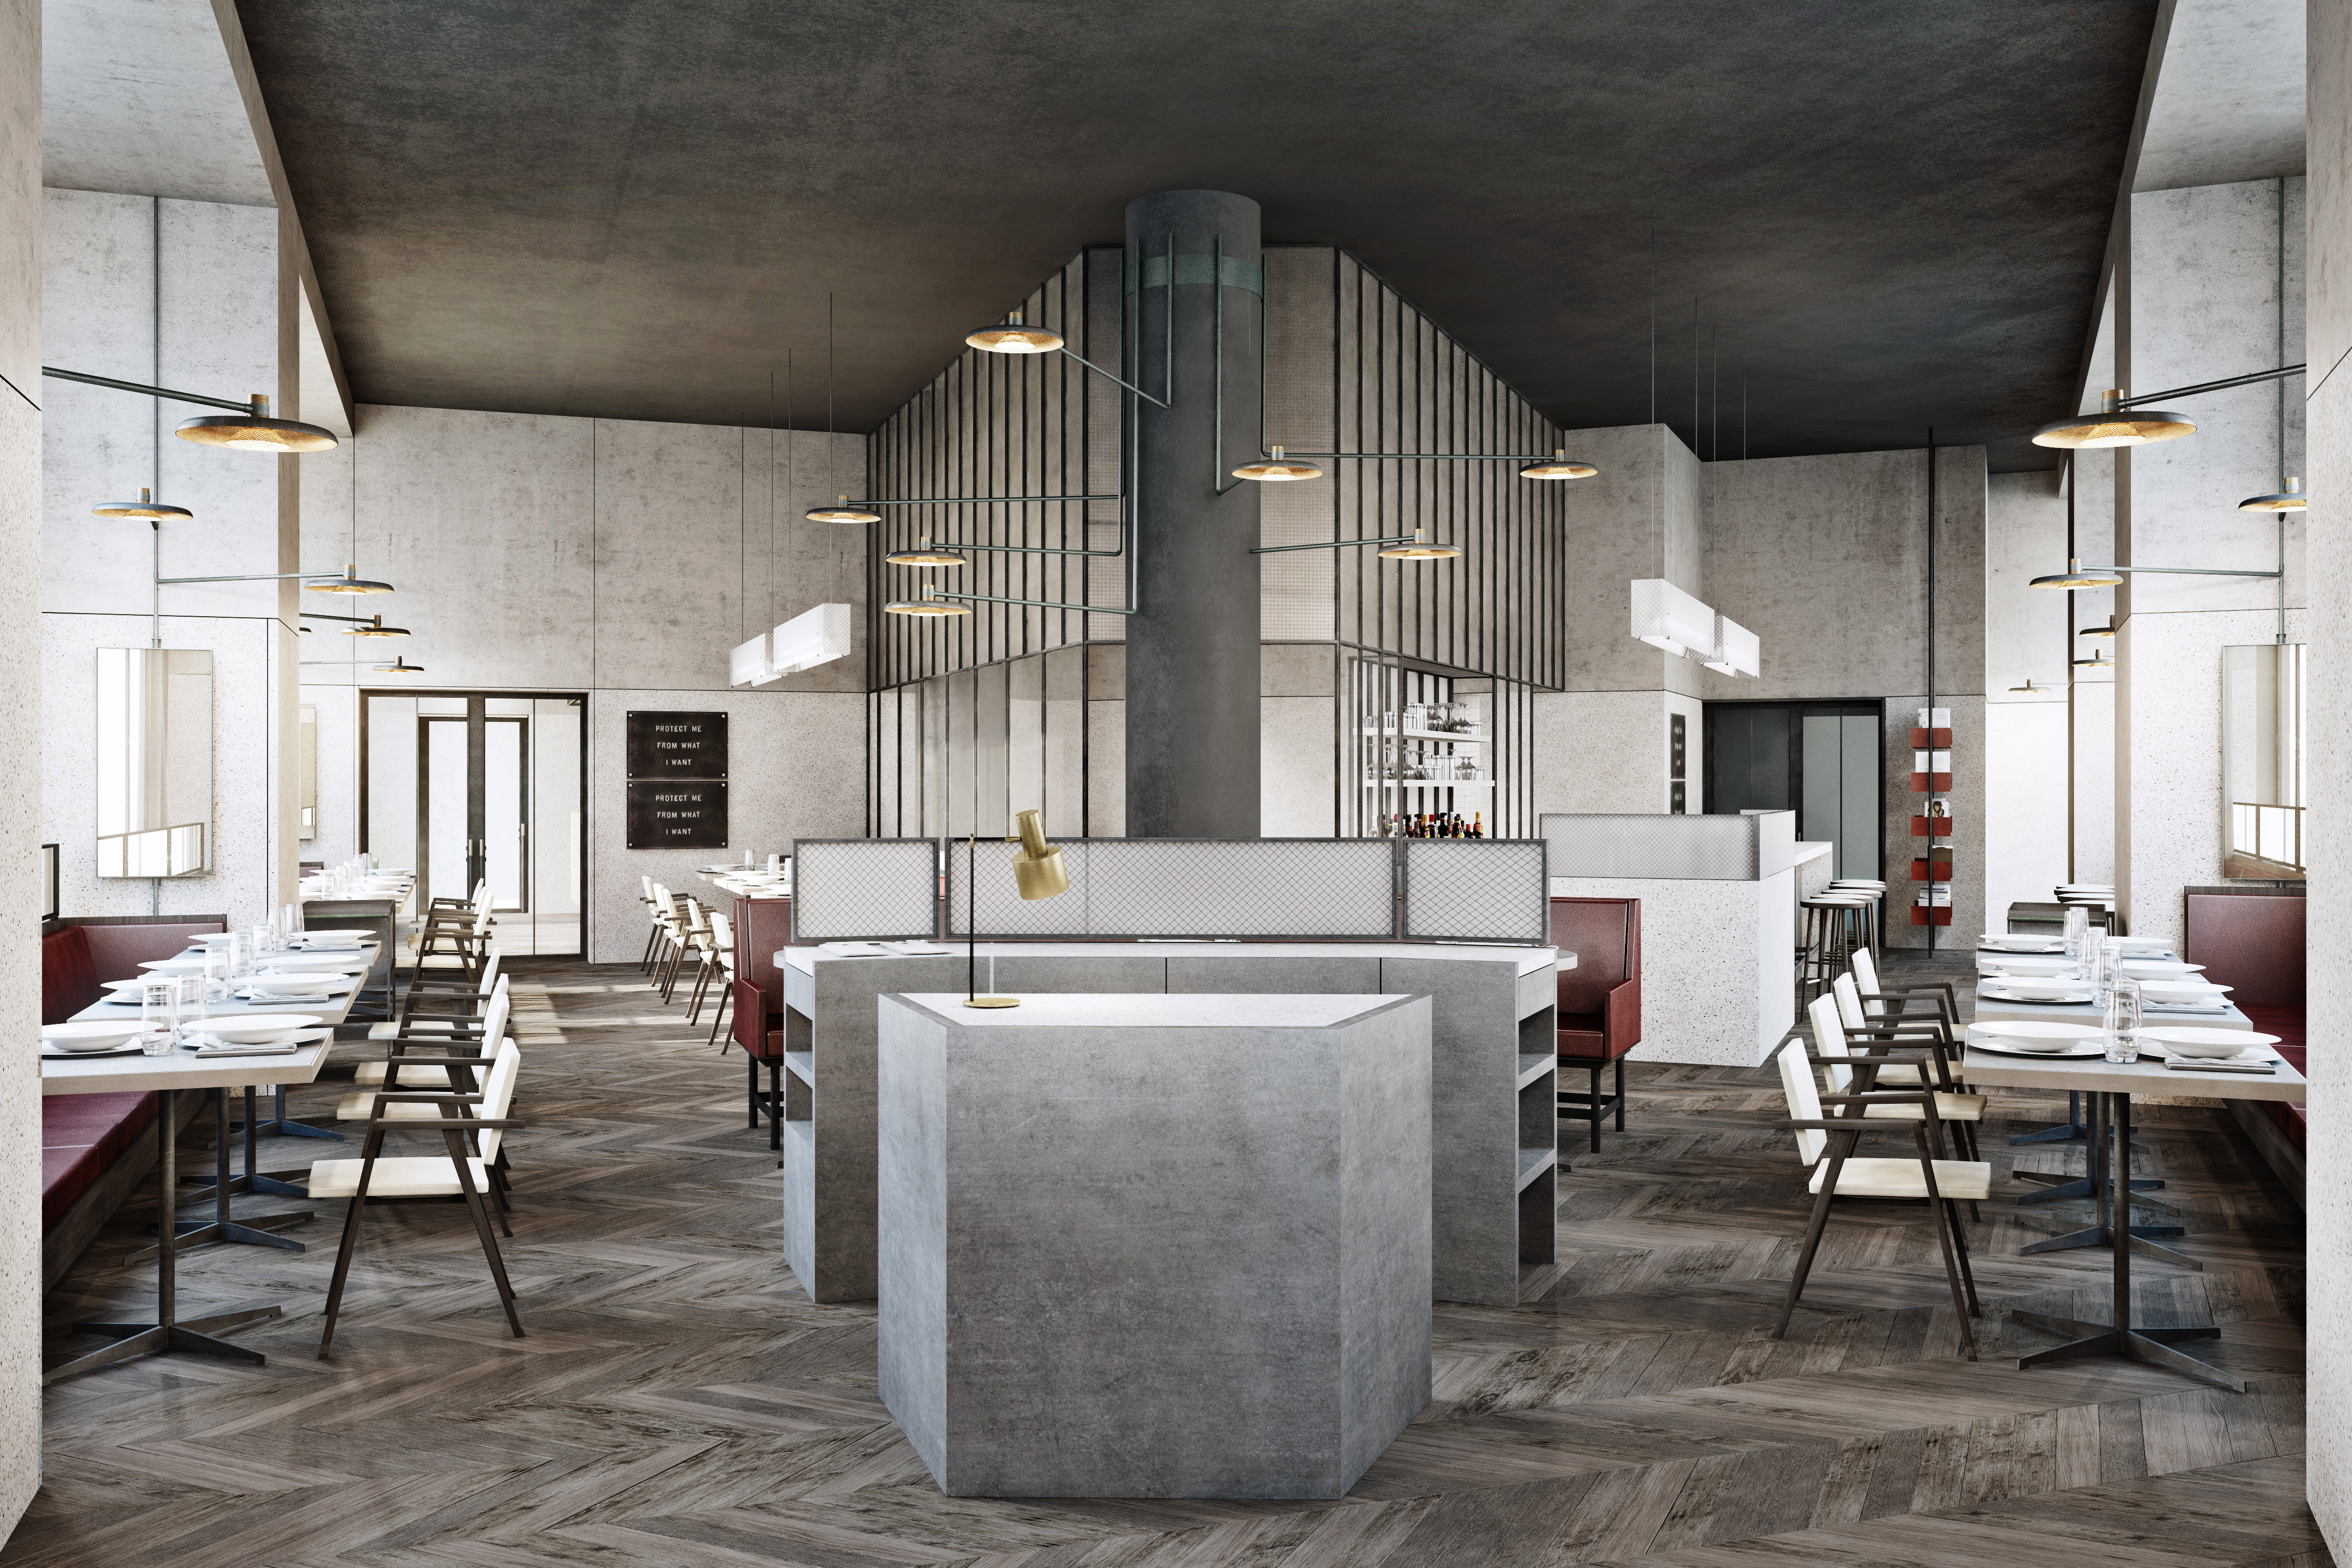 Wicker Park Hotel Restaurants Rooftops Revealed Preview All 5